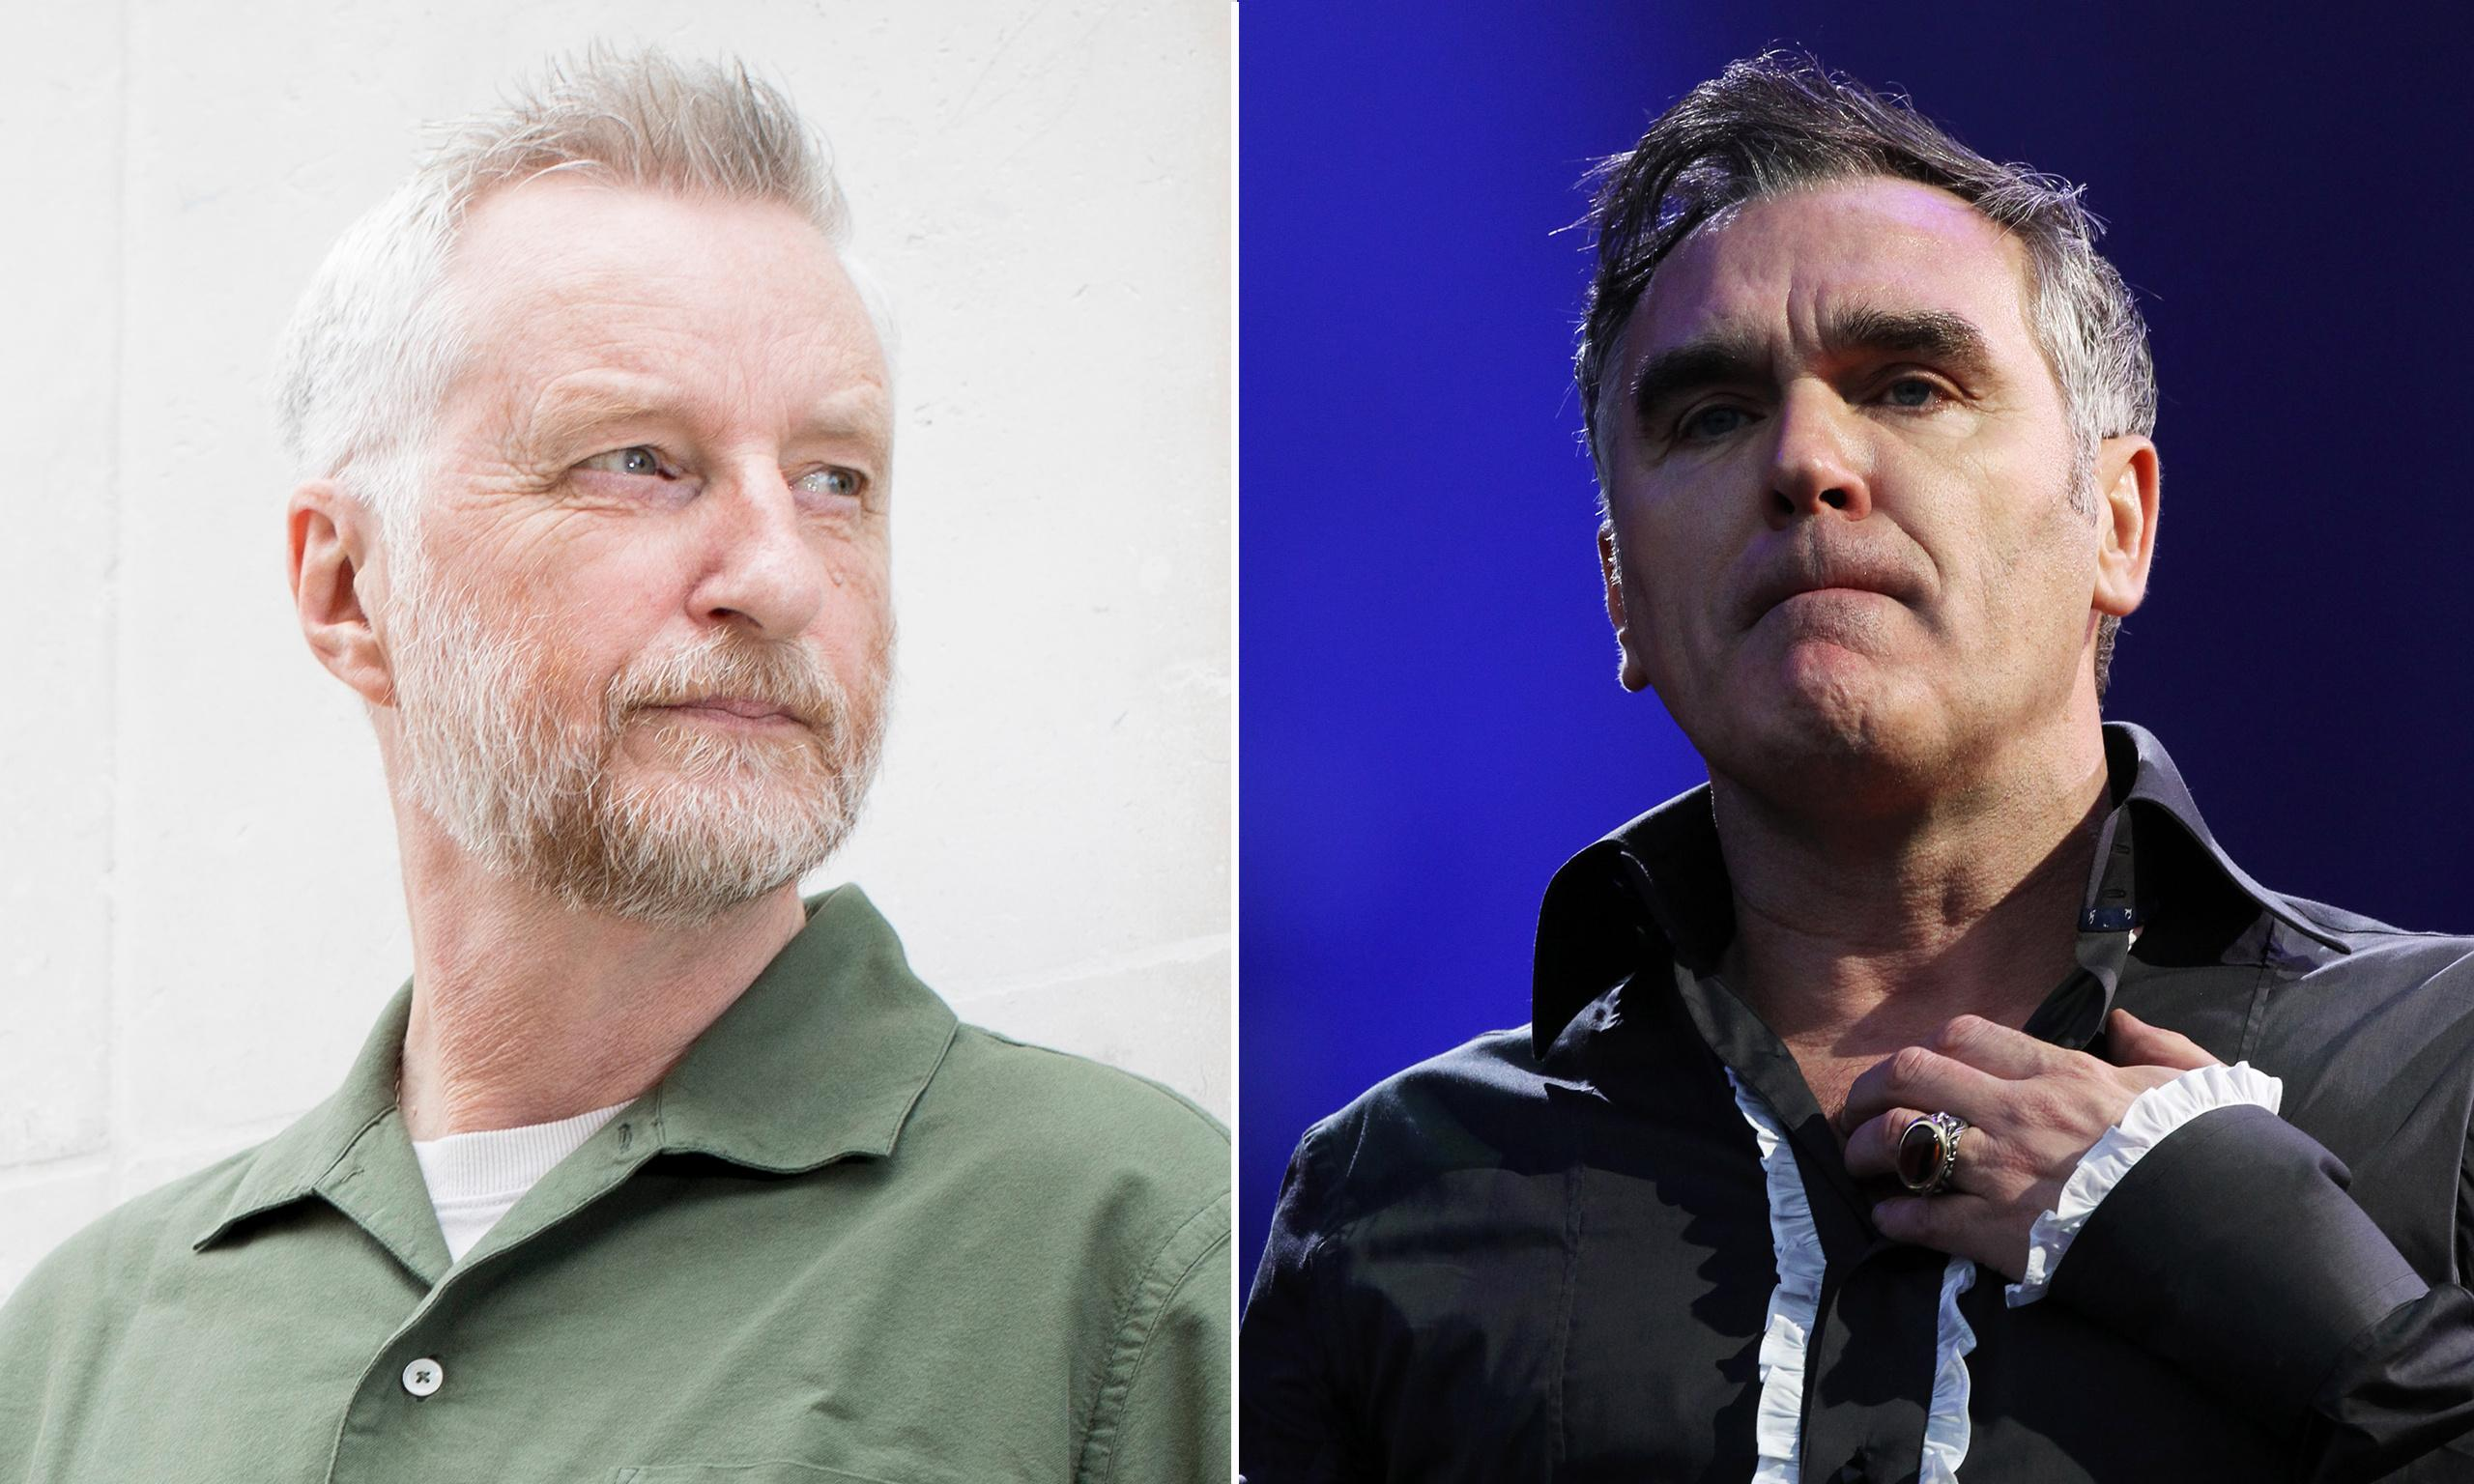 Billy Bragg claims it is 'beyond doubt' that Morrissey is spreading far-right ideas